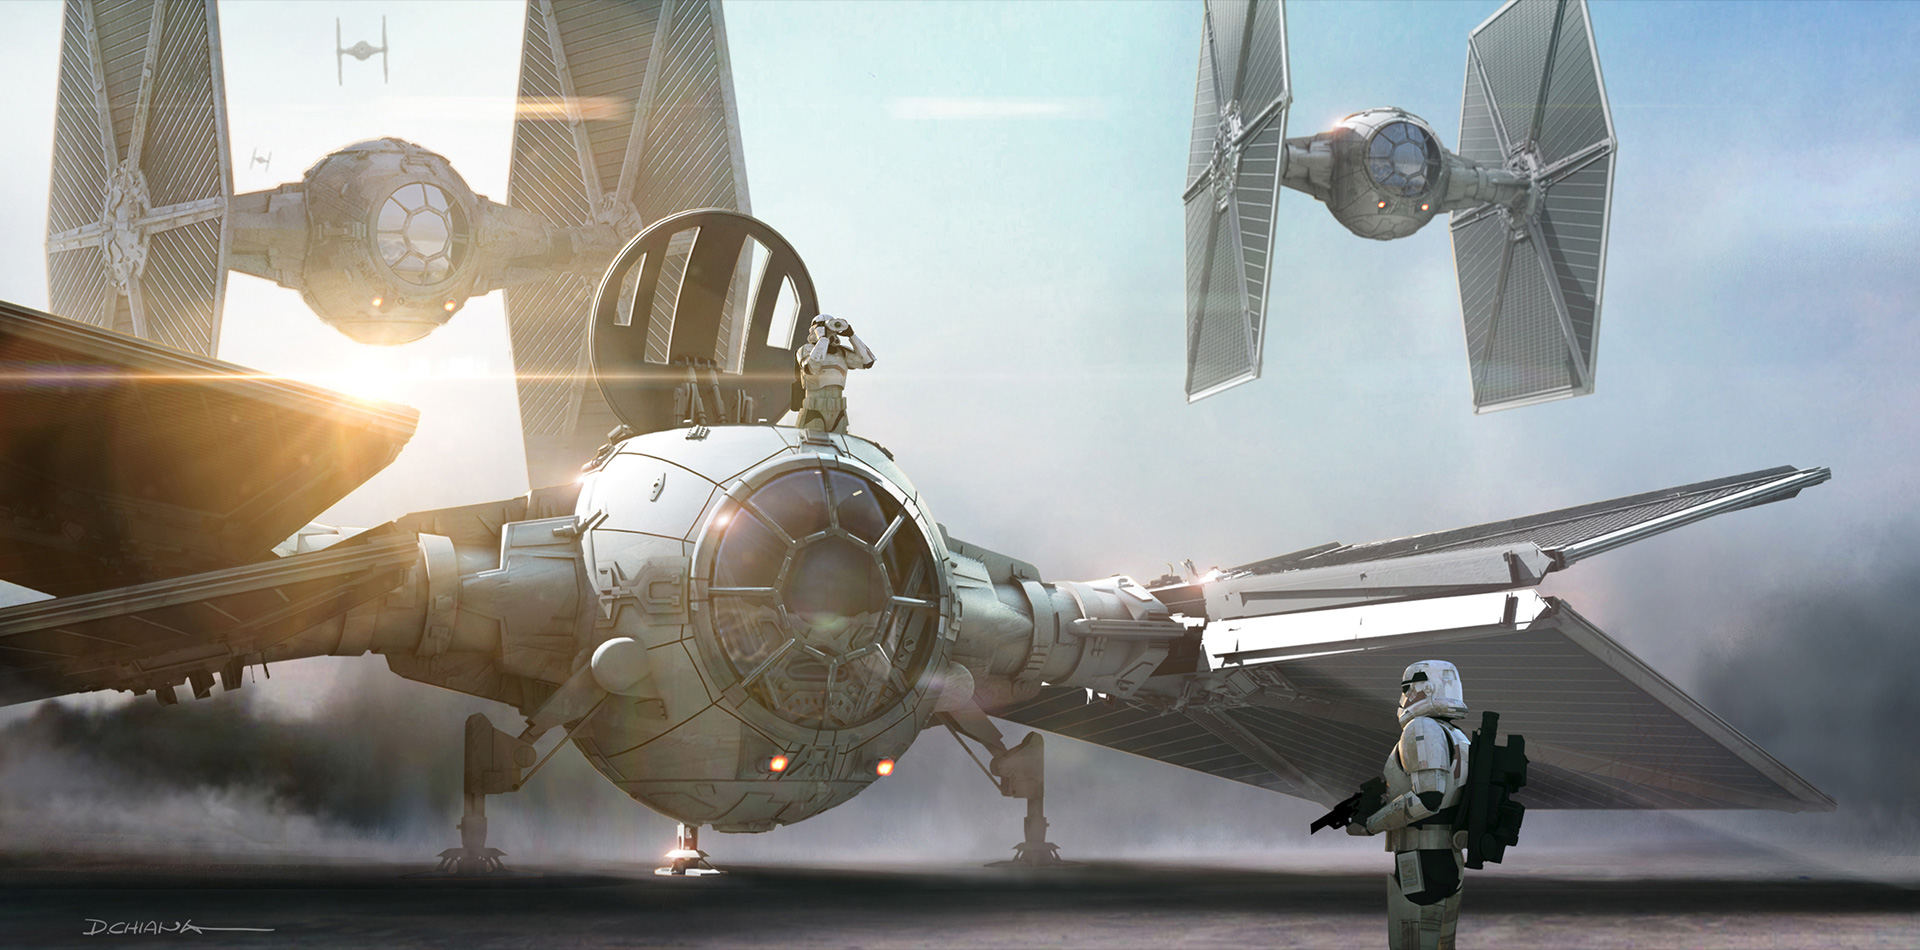 Star Wars: The Force Awakens Concept Art by Industrial ...